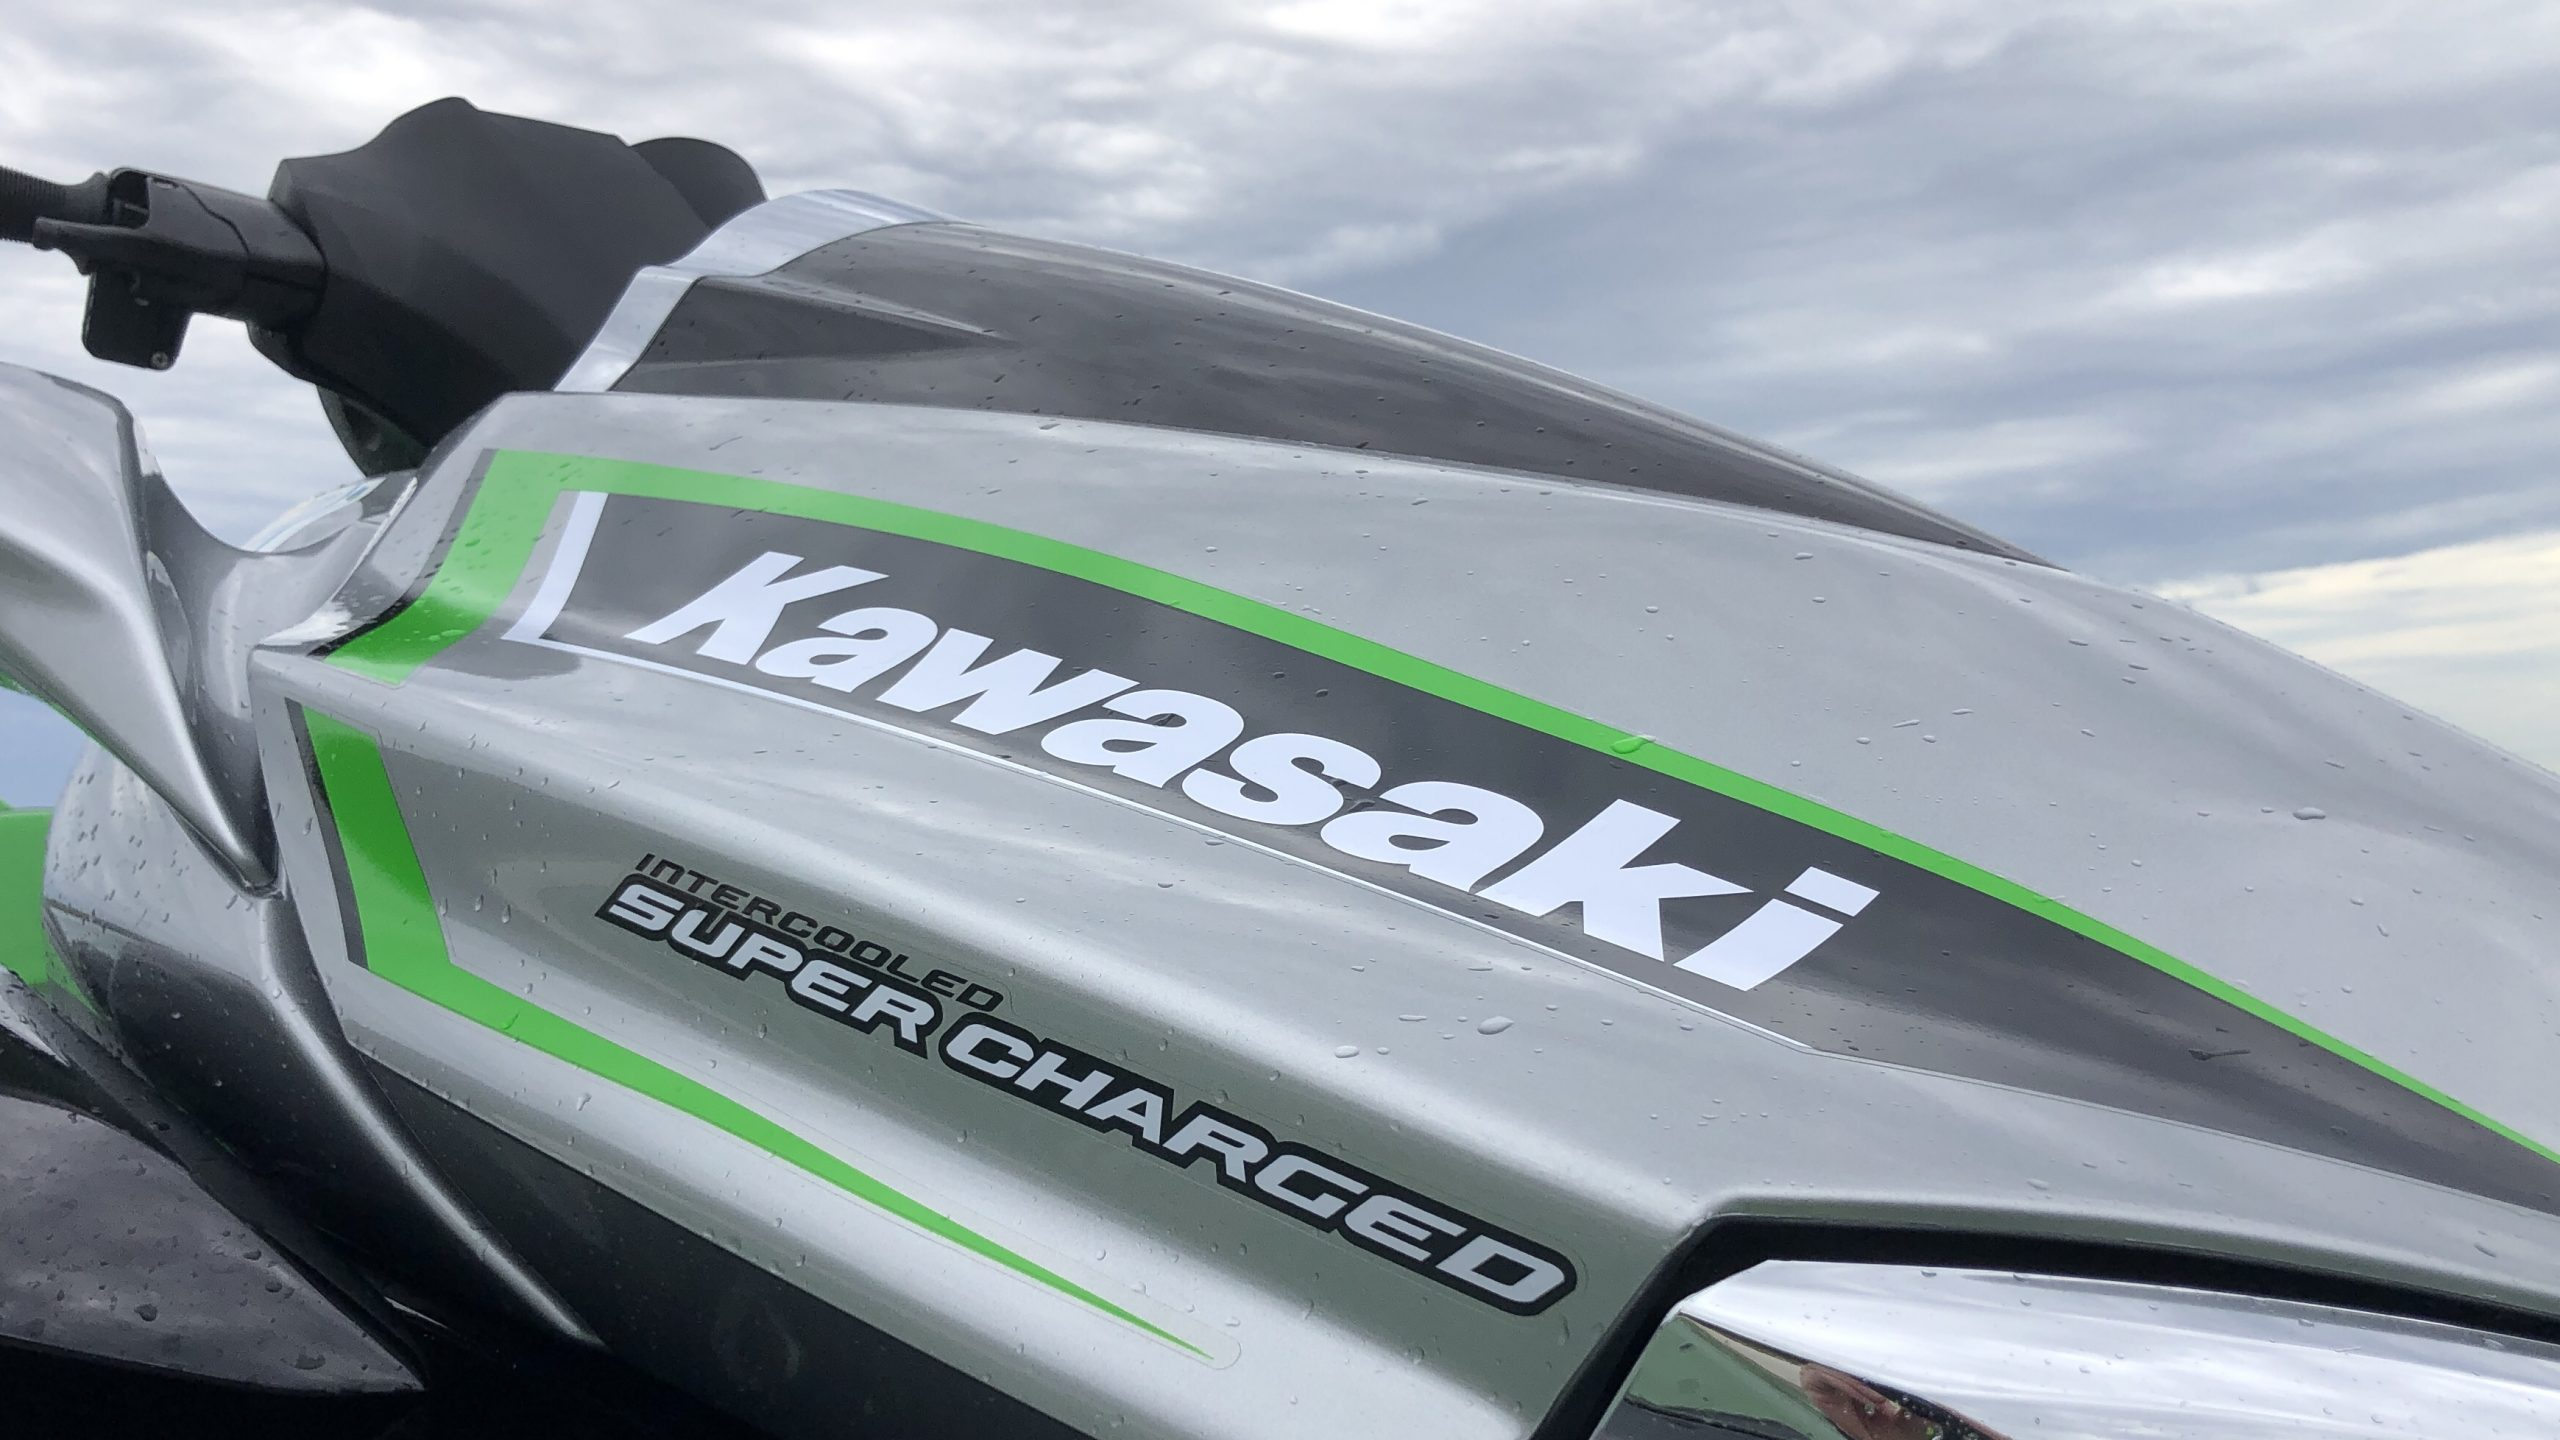 Why Kawasaki Jet Skis will kick butt in 2022 after a decade in the wilderness